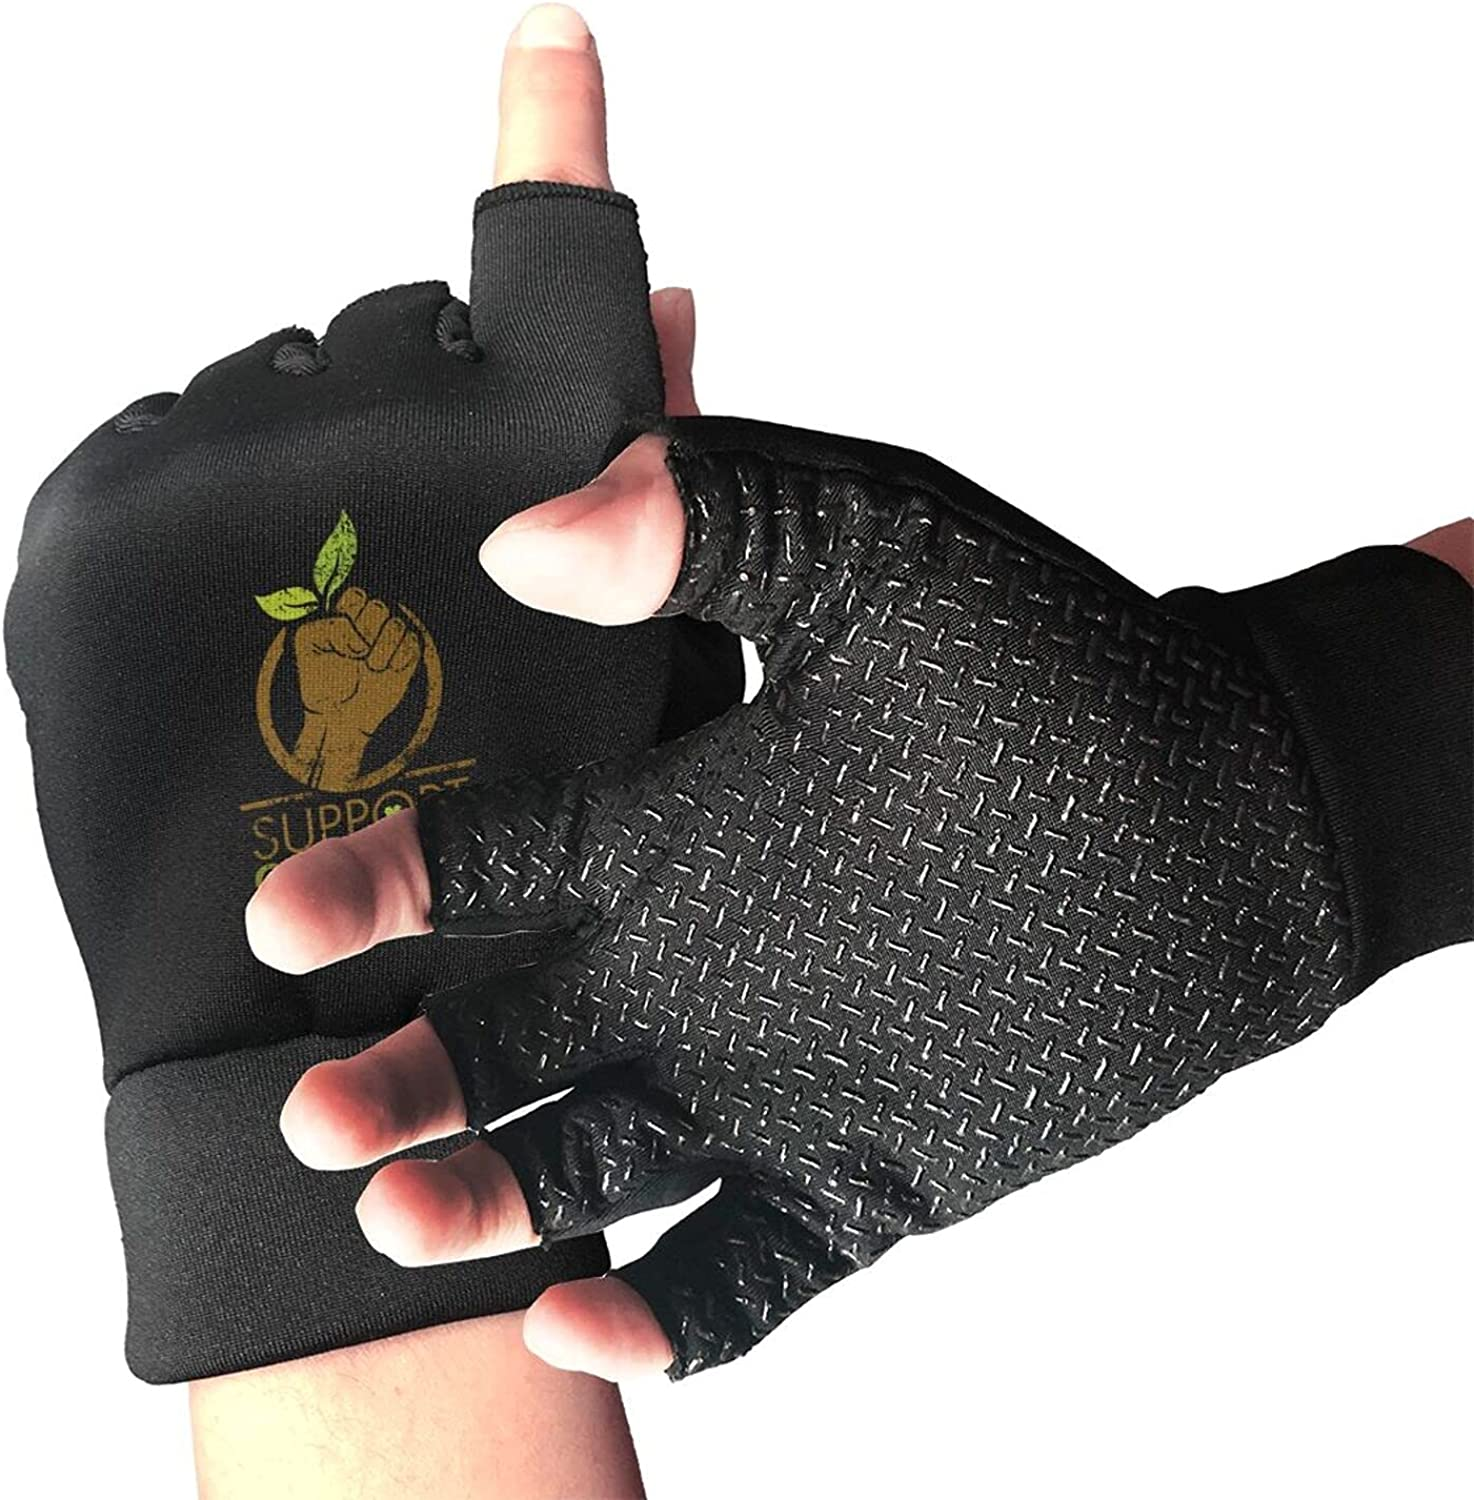 service Support Local Farmers Non-Slip Sunbloc Driving Breathable Gloves Same day shipping